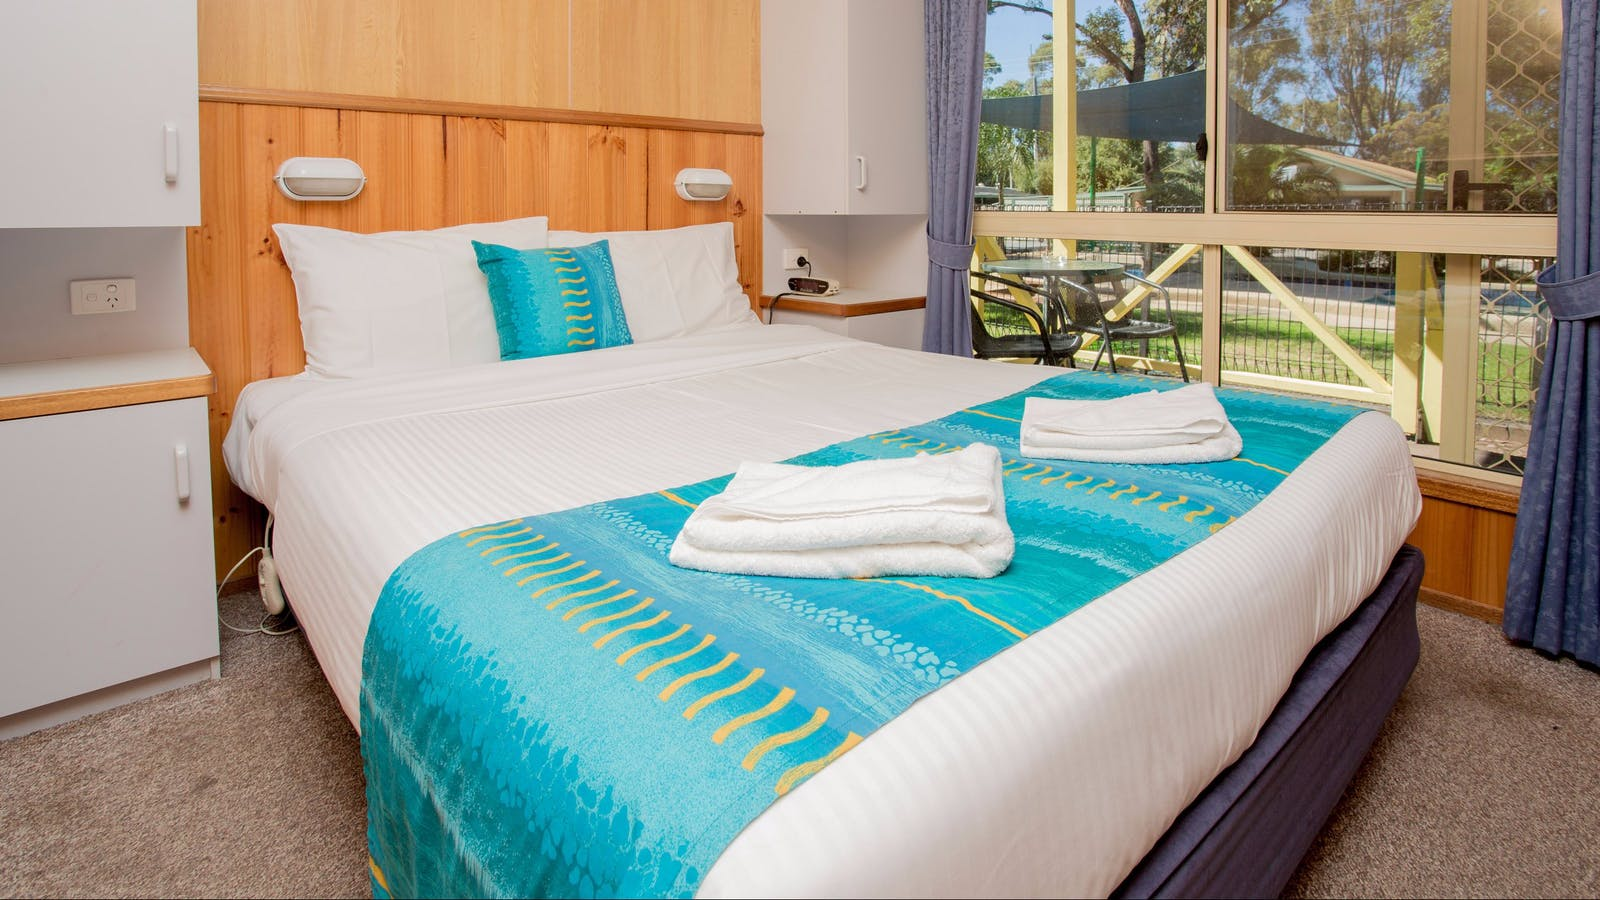 Secura Lifestyle Shepparton East cabin accommodation